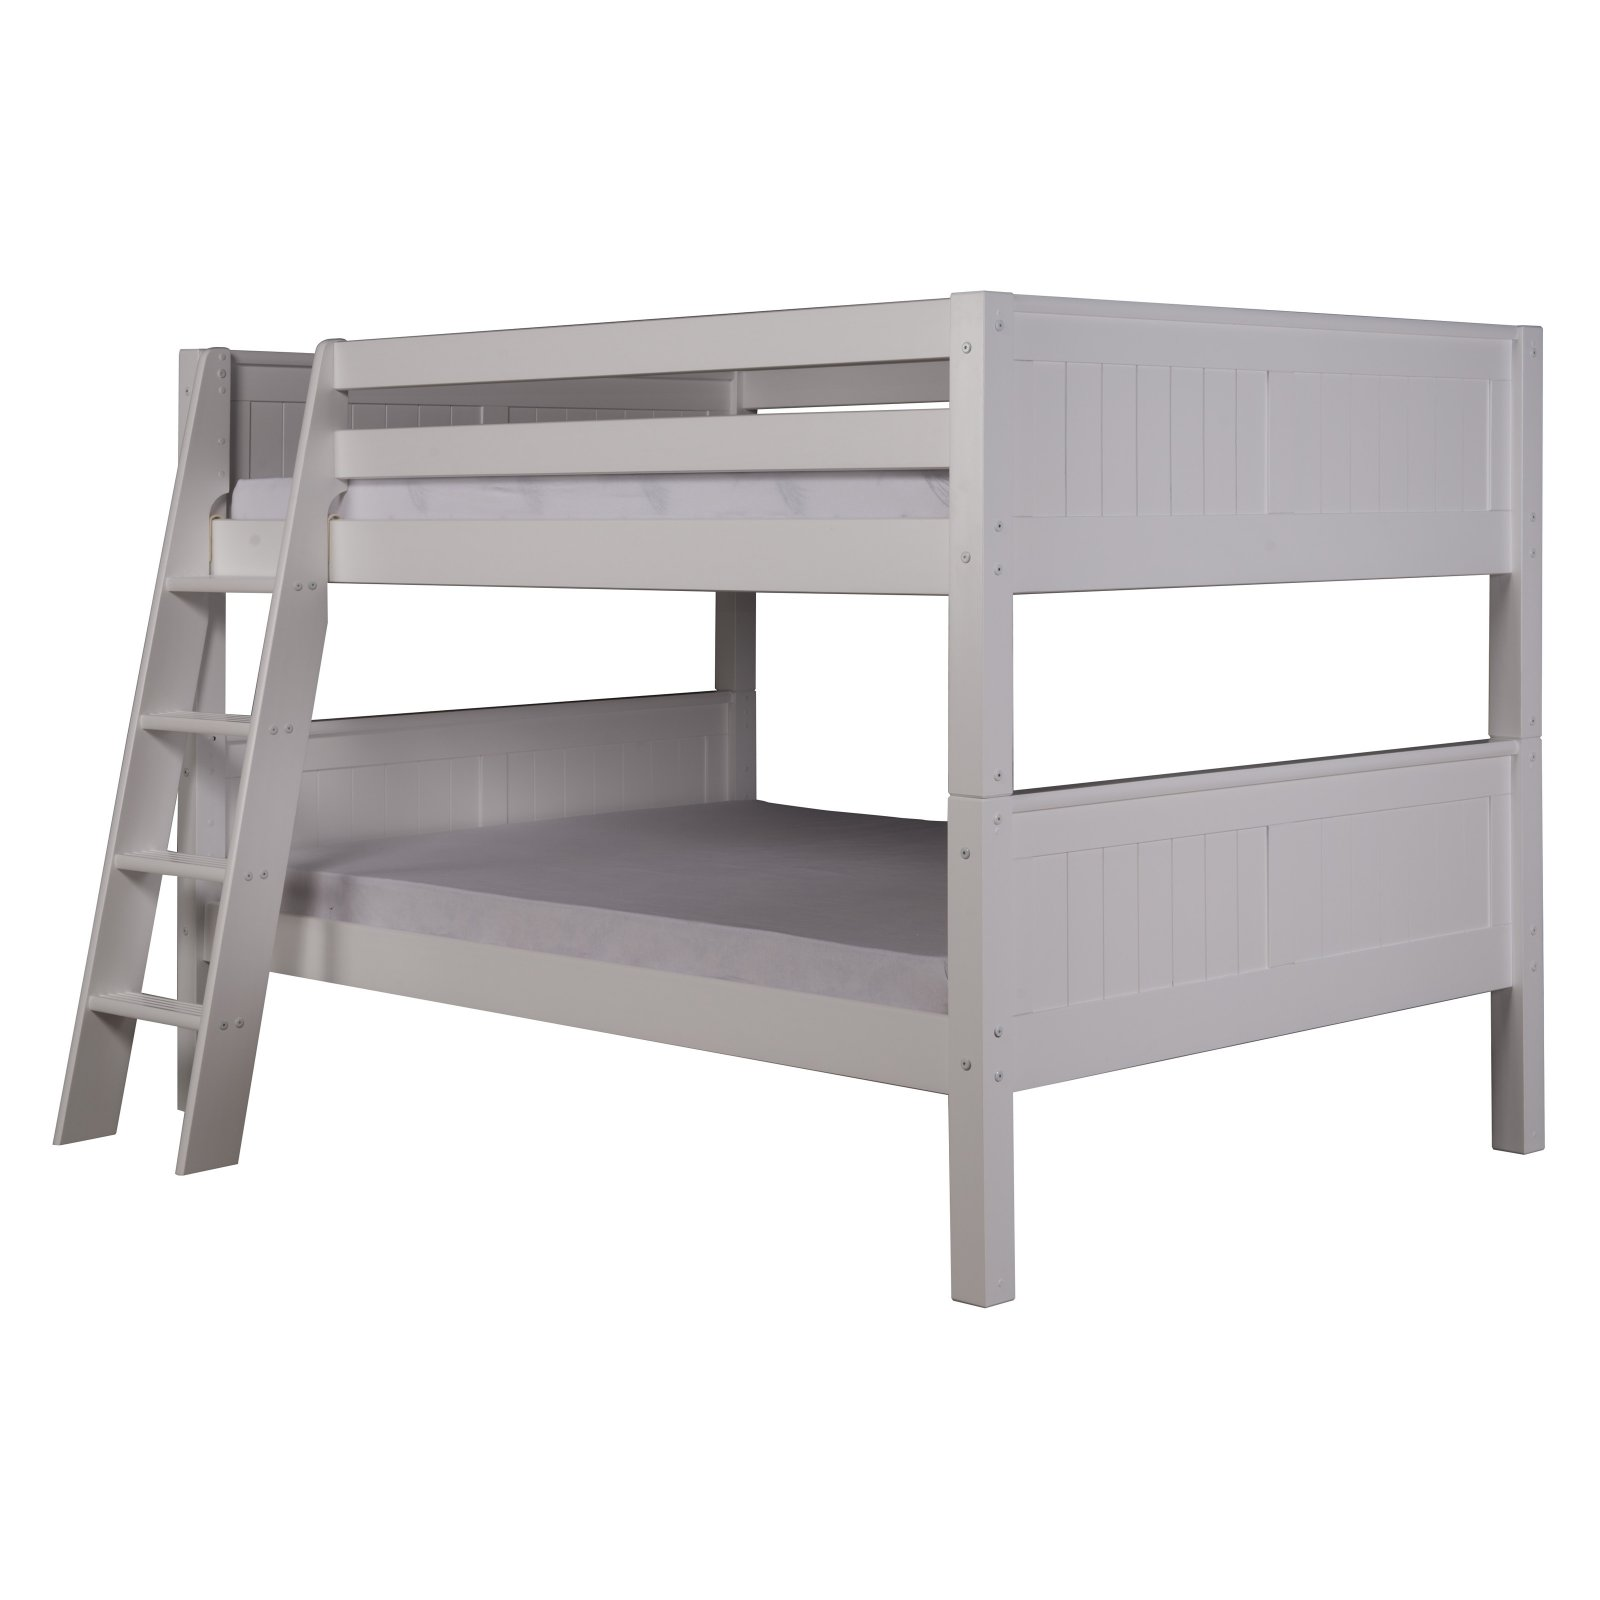 Camaflexi Full over Low Bunk Bed - Panel Headboard Angle Ladder White Finish Beds